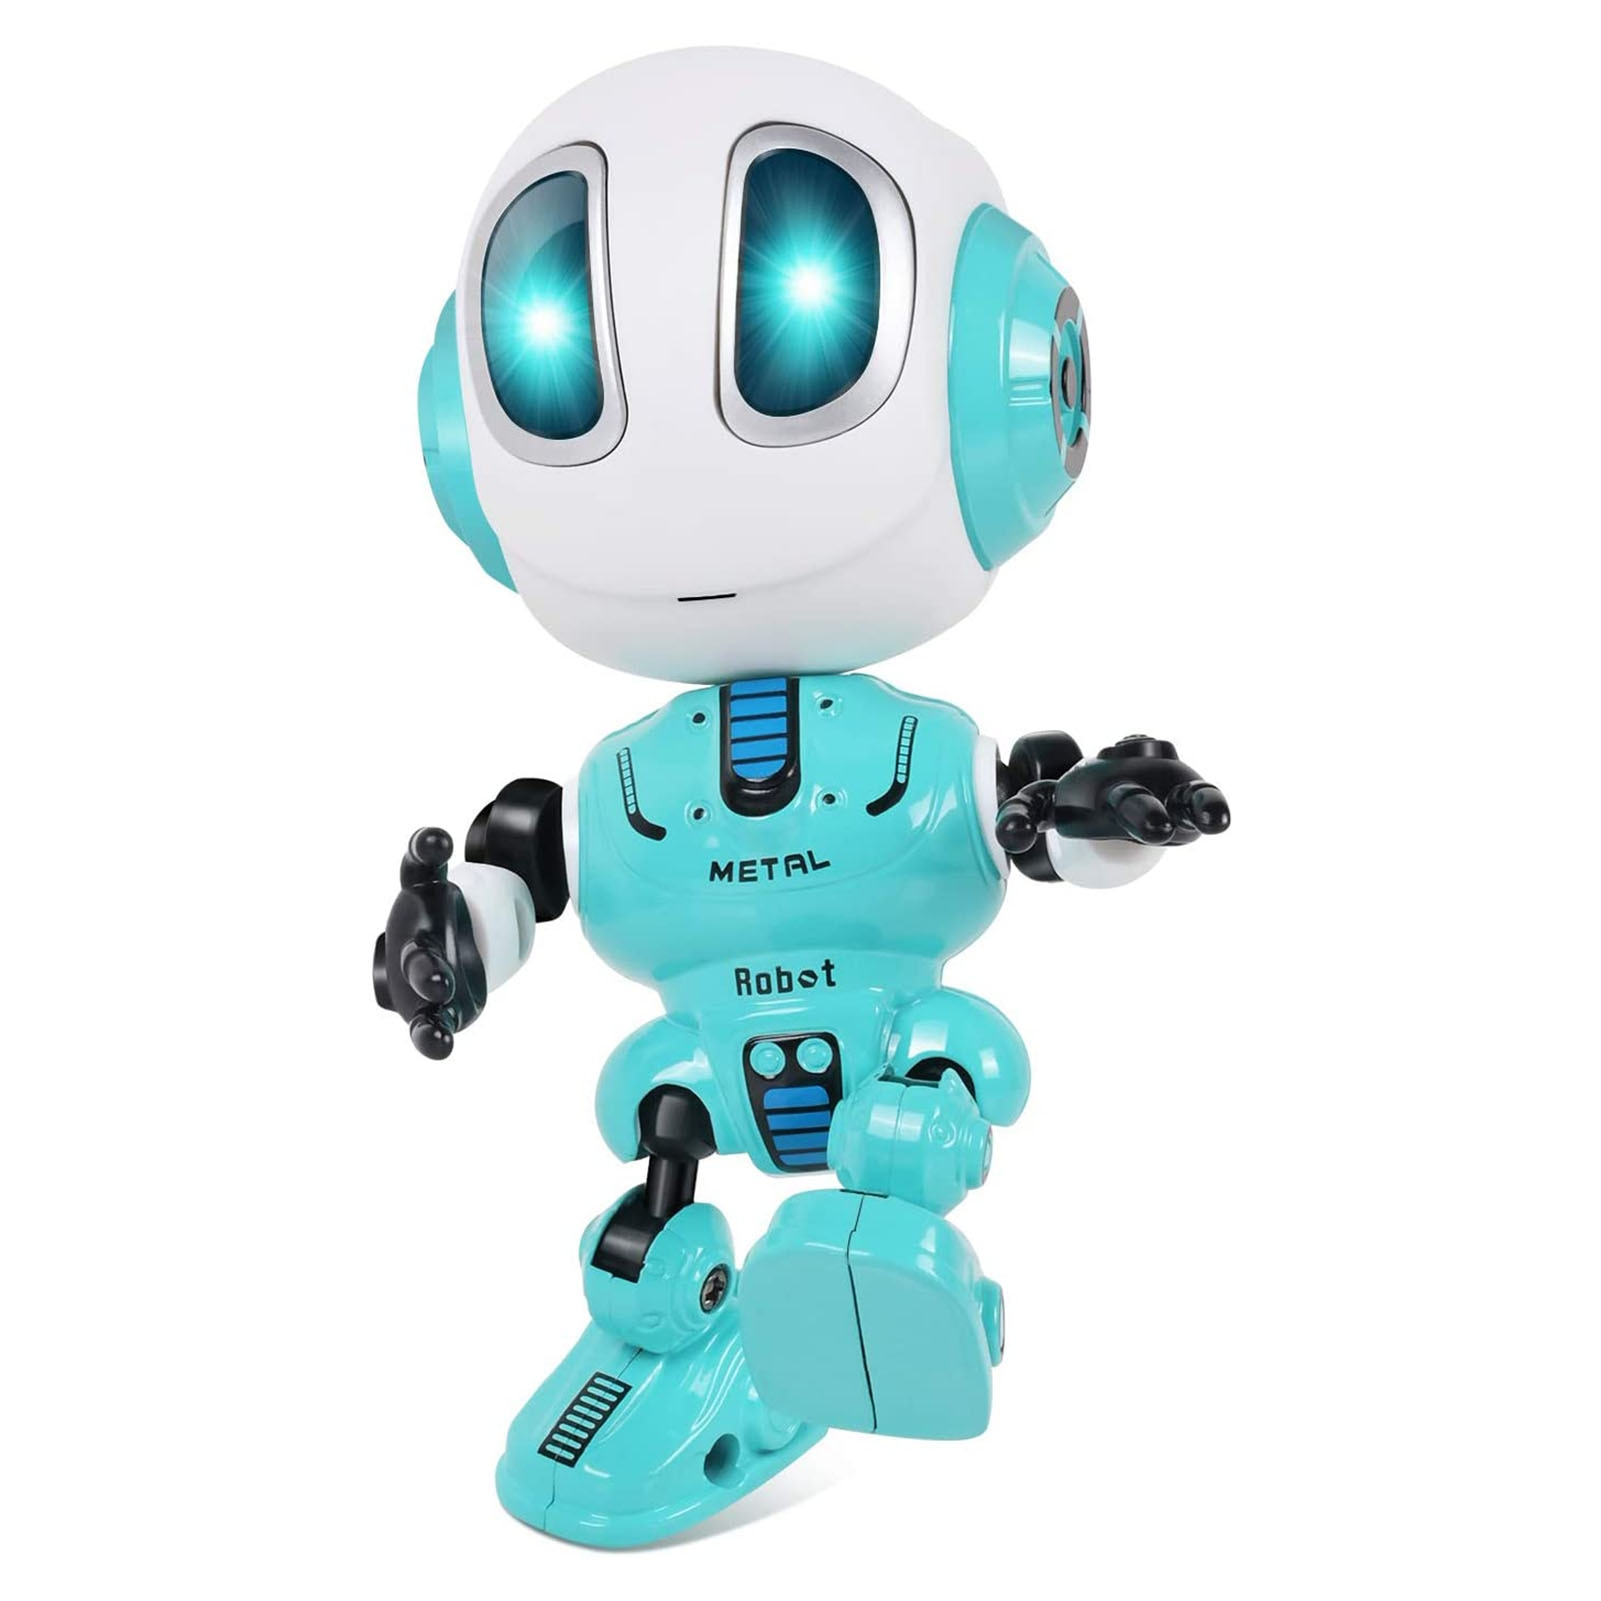 High-quality Smart Robot Toys Gifts For 3-8 Year Old Boys Girls, Talking Robot For Kids Smart Toys P